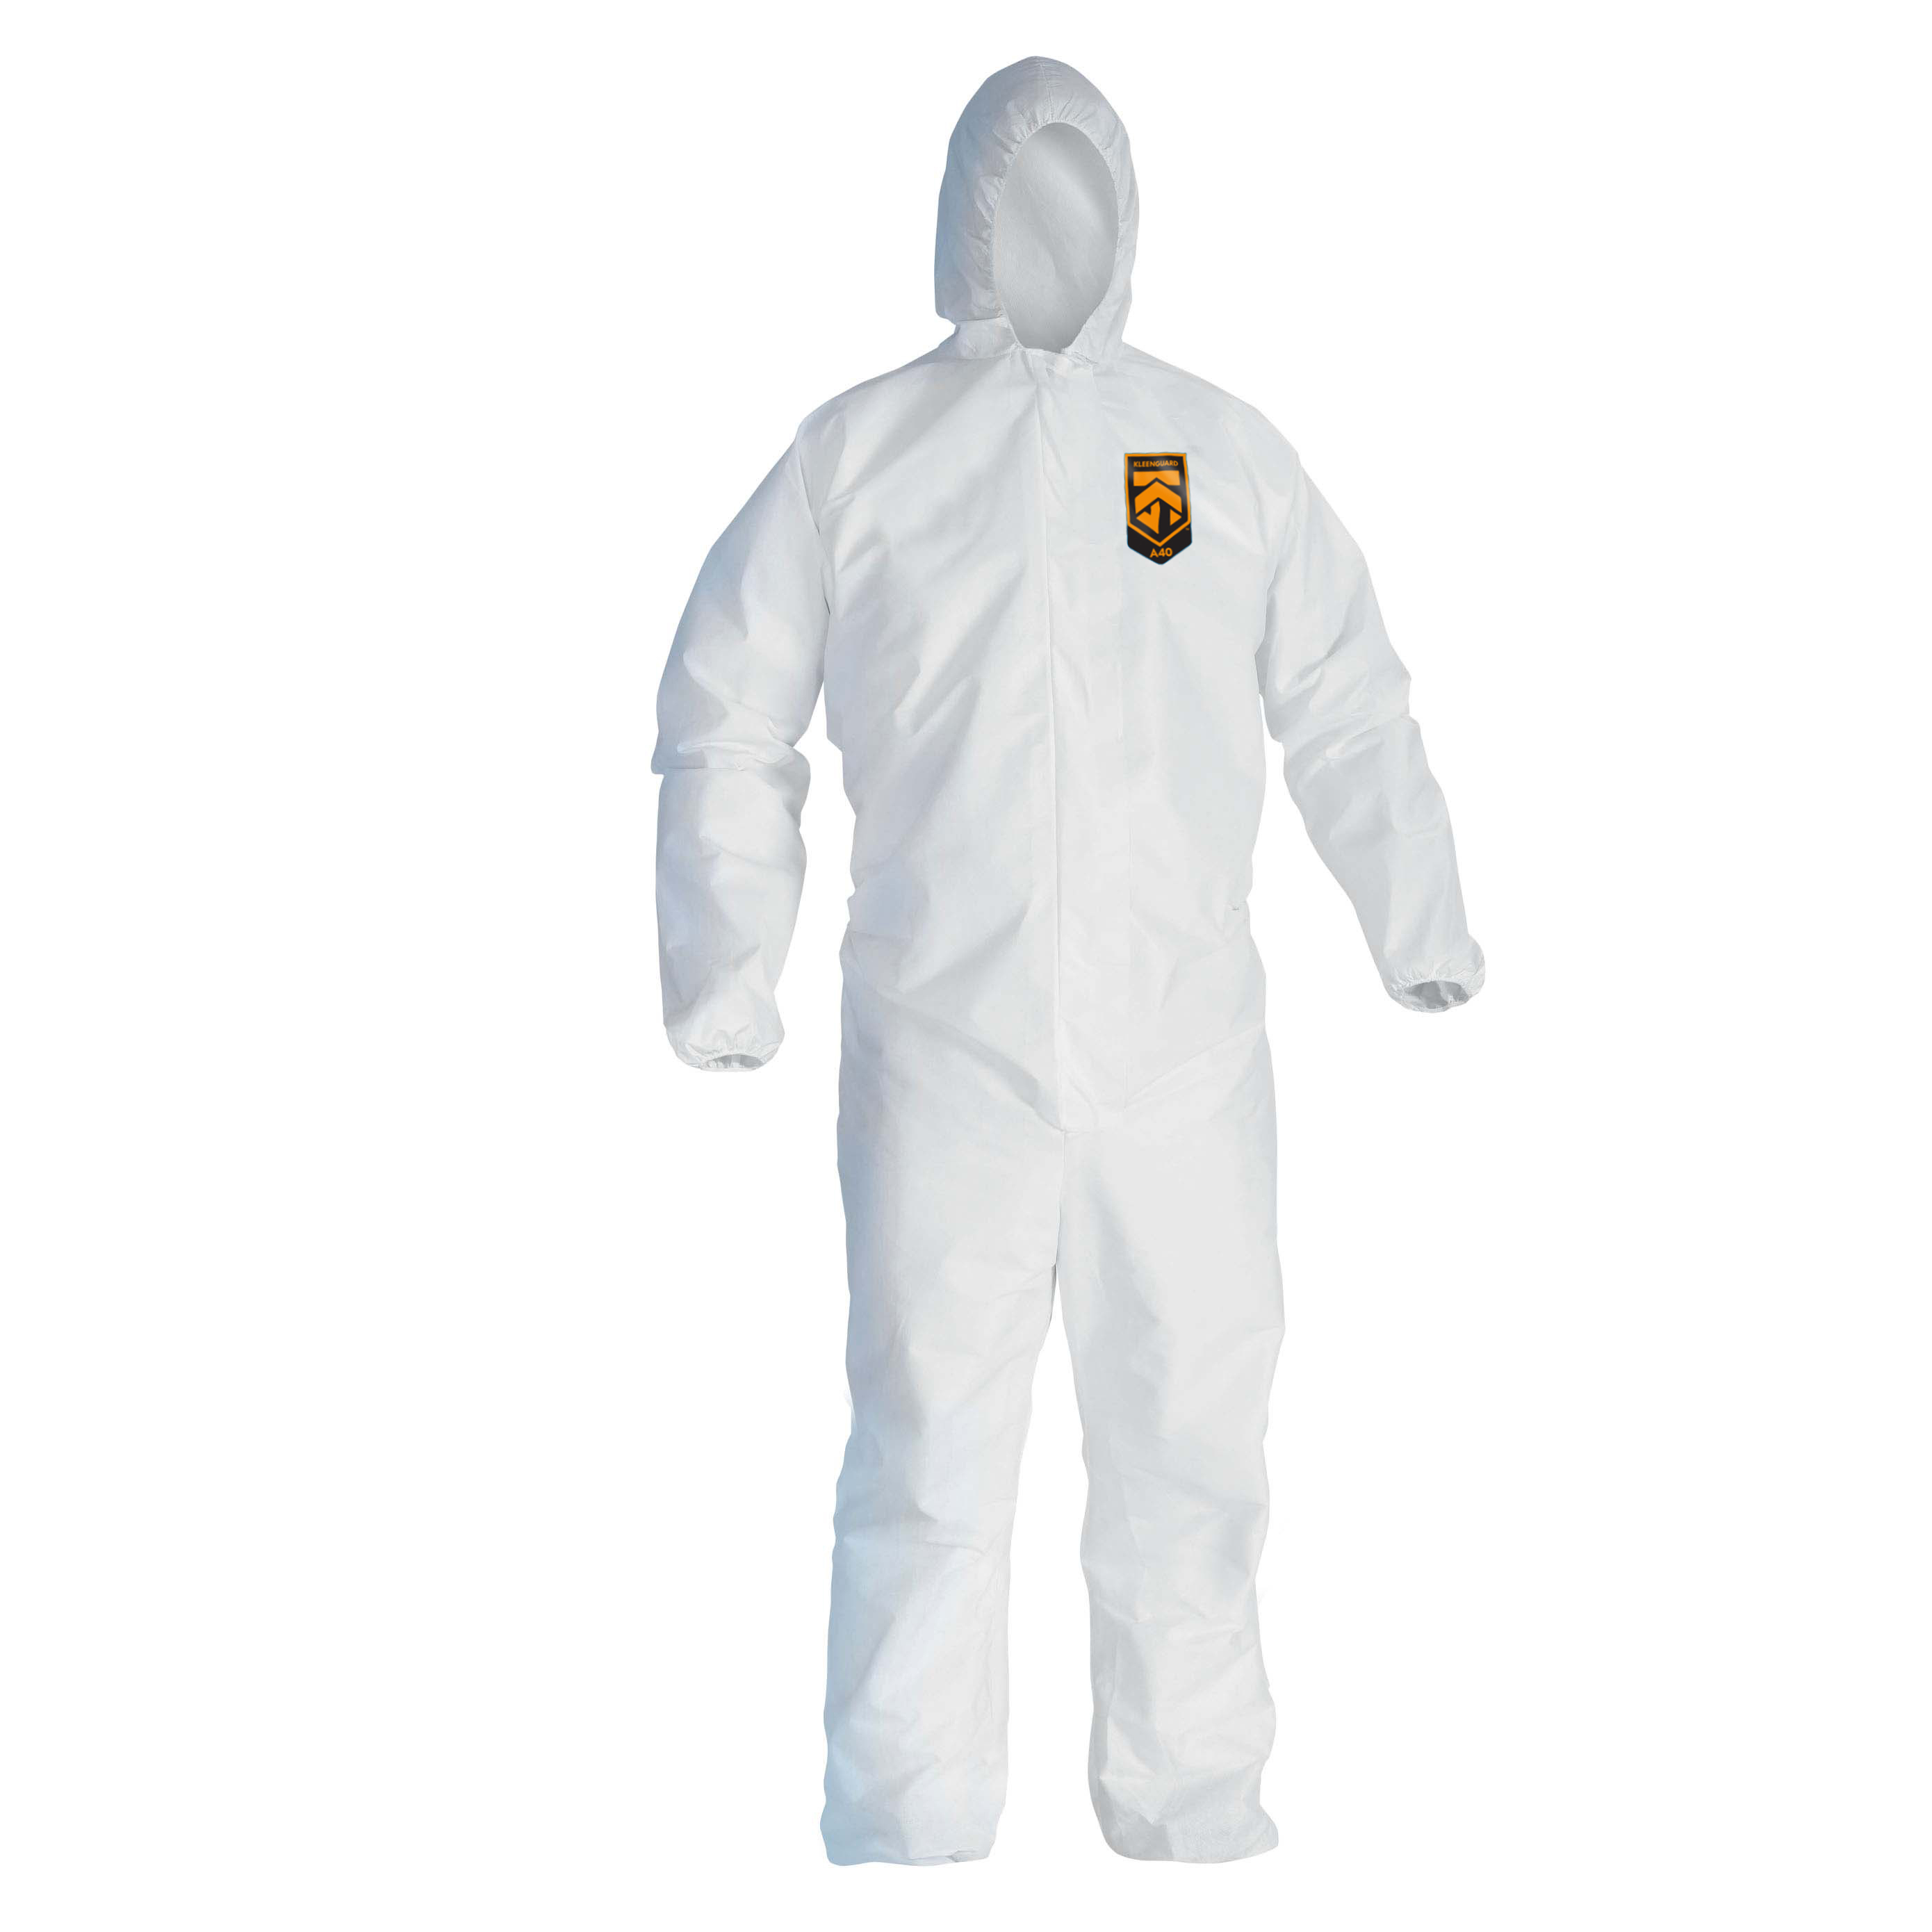 97910-KLEENGUARD A40 Liquid & Particle Protection Coveralls - Hooded / Medium / White